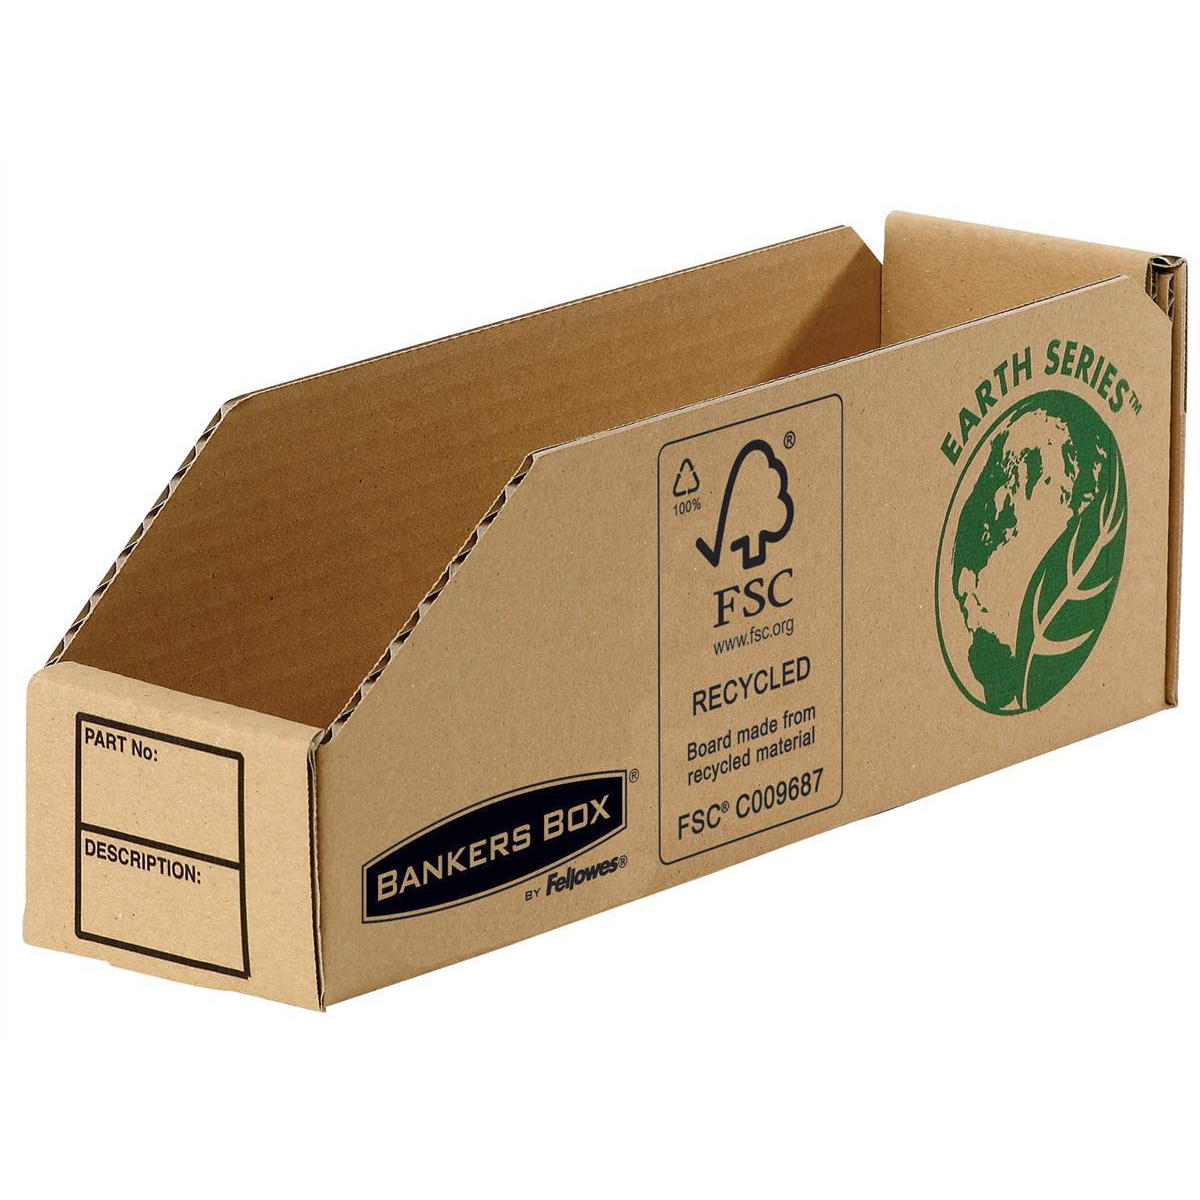 Containers Bankers Box by Fellowes Parts Bin Corrugated Fibreboard Packed Flat W76xD280xH102mm Ref 07352 Pack 50